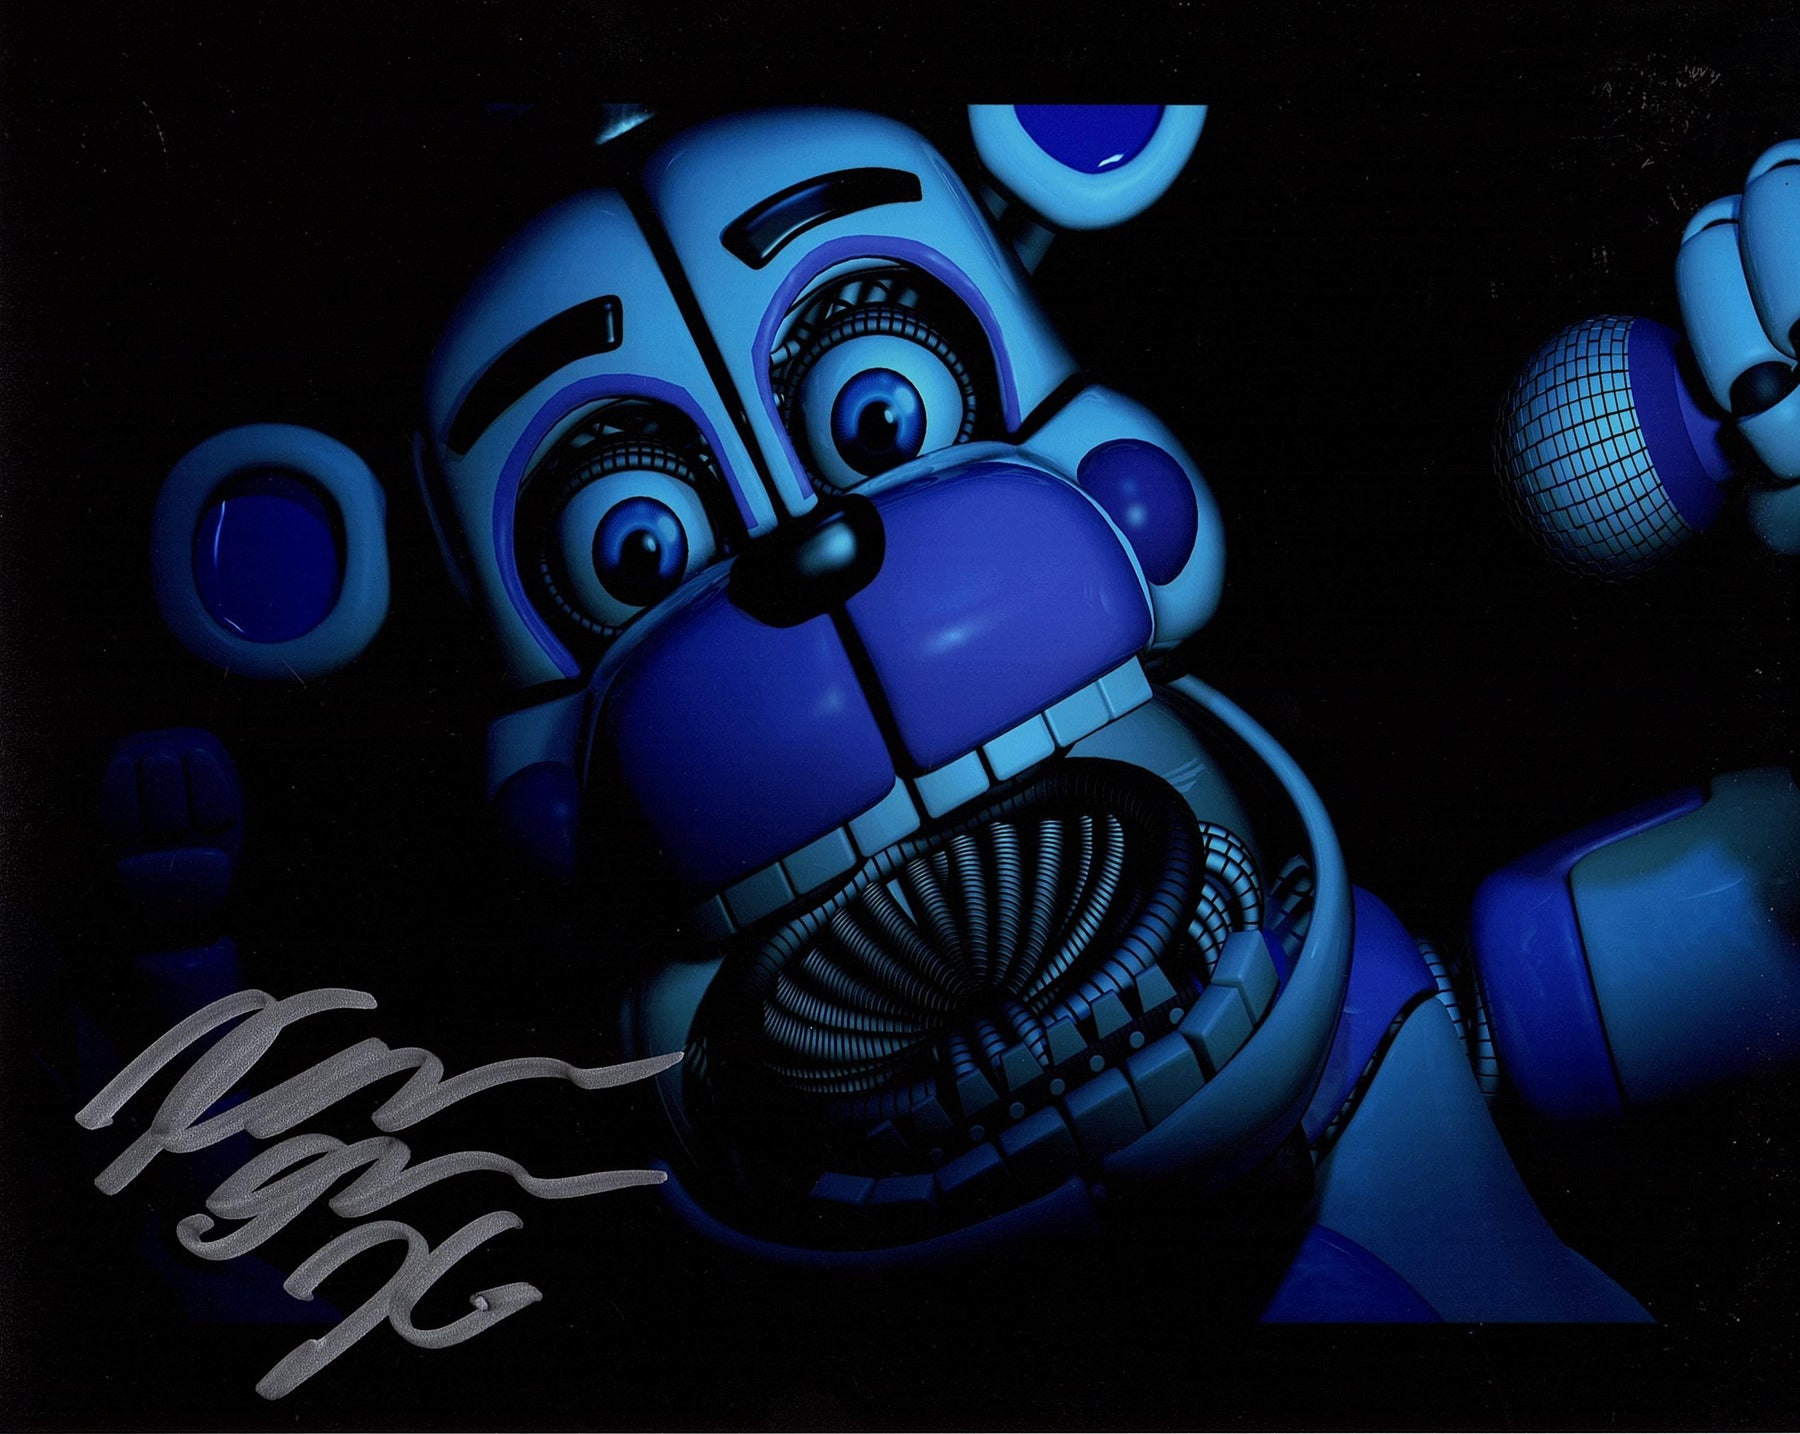 Kellen Goff Signed 8x10 Photo Five Nights at Funtime Freddy's COA Z1